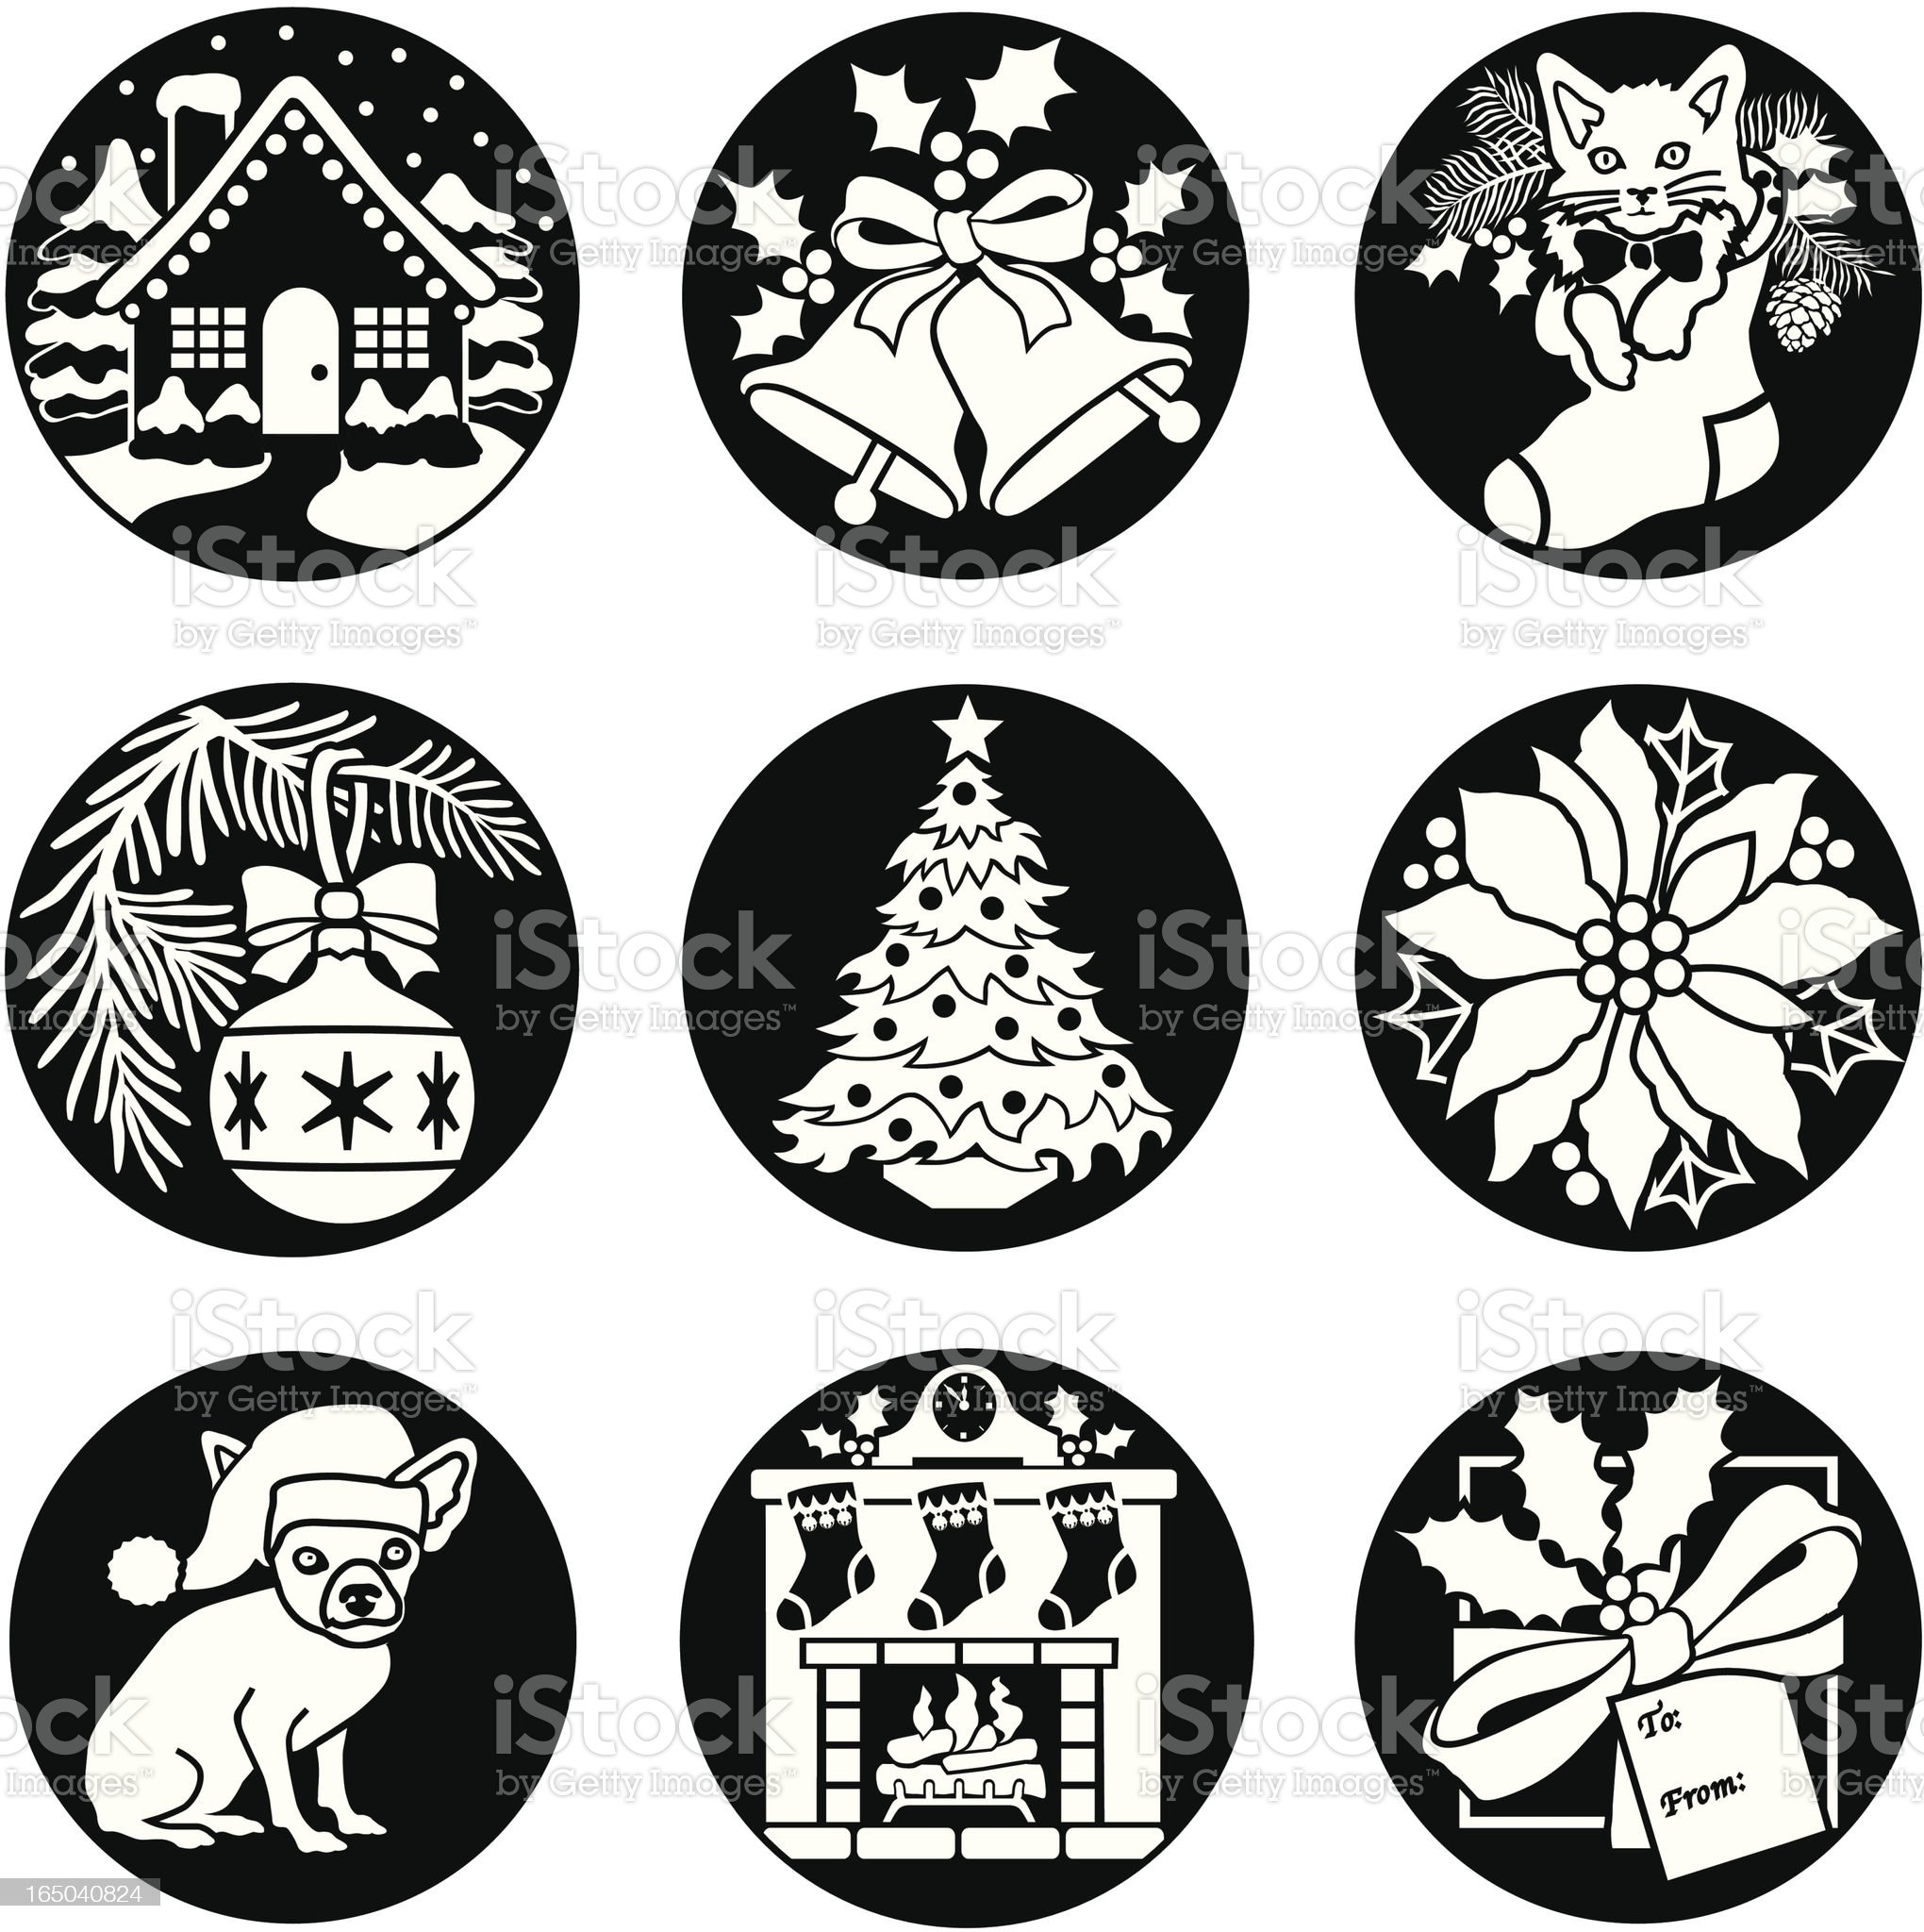 Christmas icons reversed royalty-free stock vector art